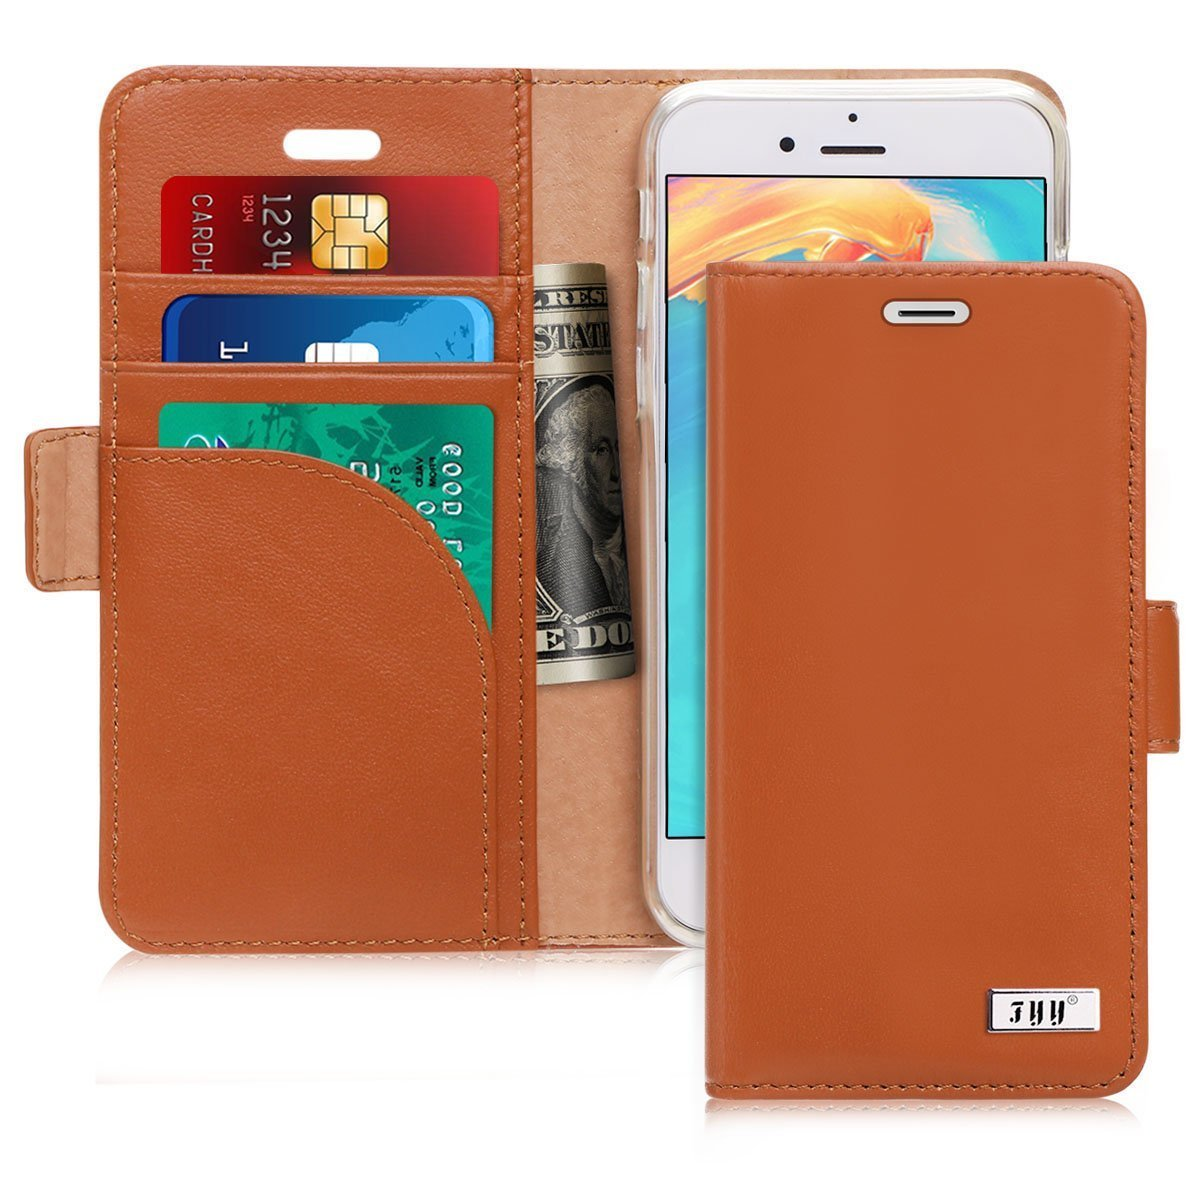 "Genuine Leather Case for iPhone 7/8 (4.7"")"